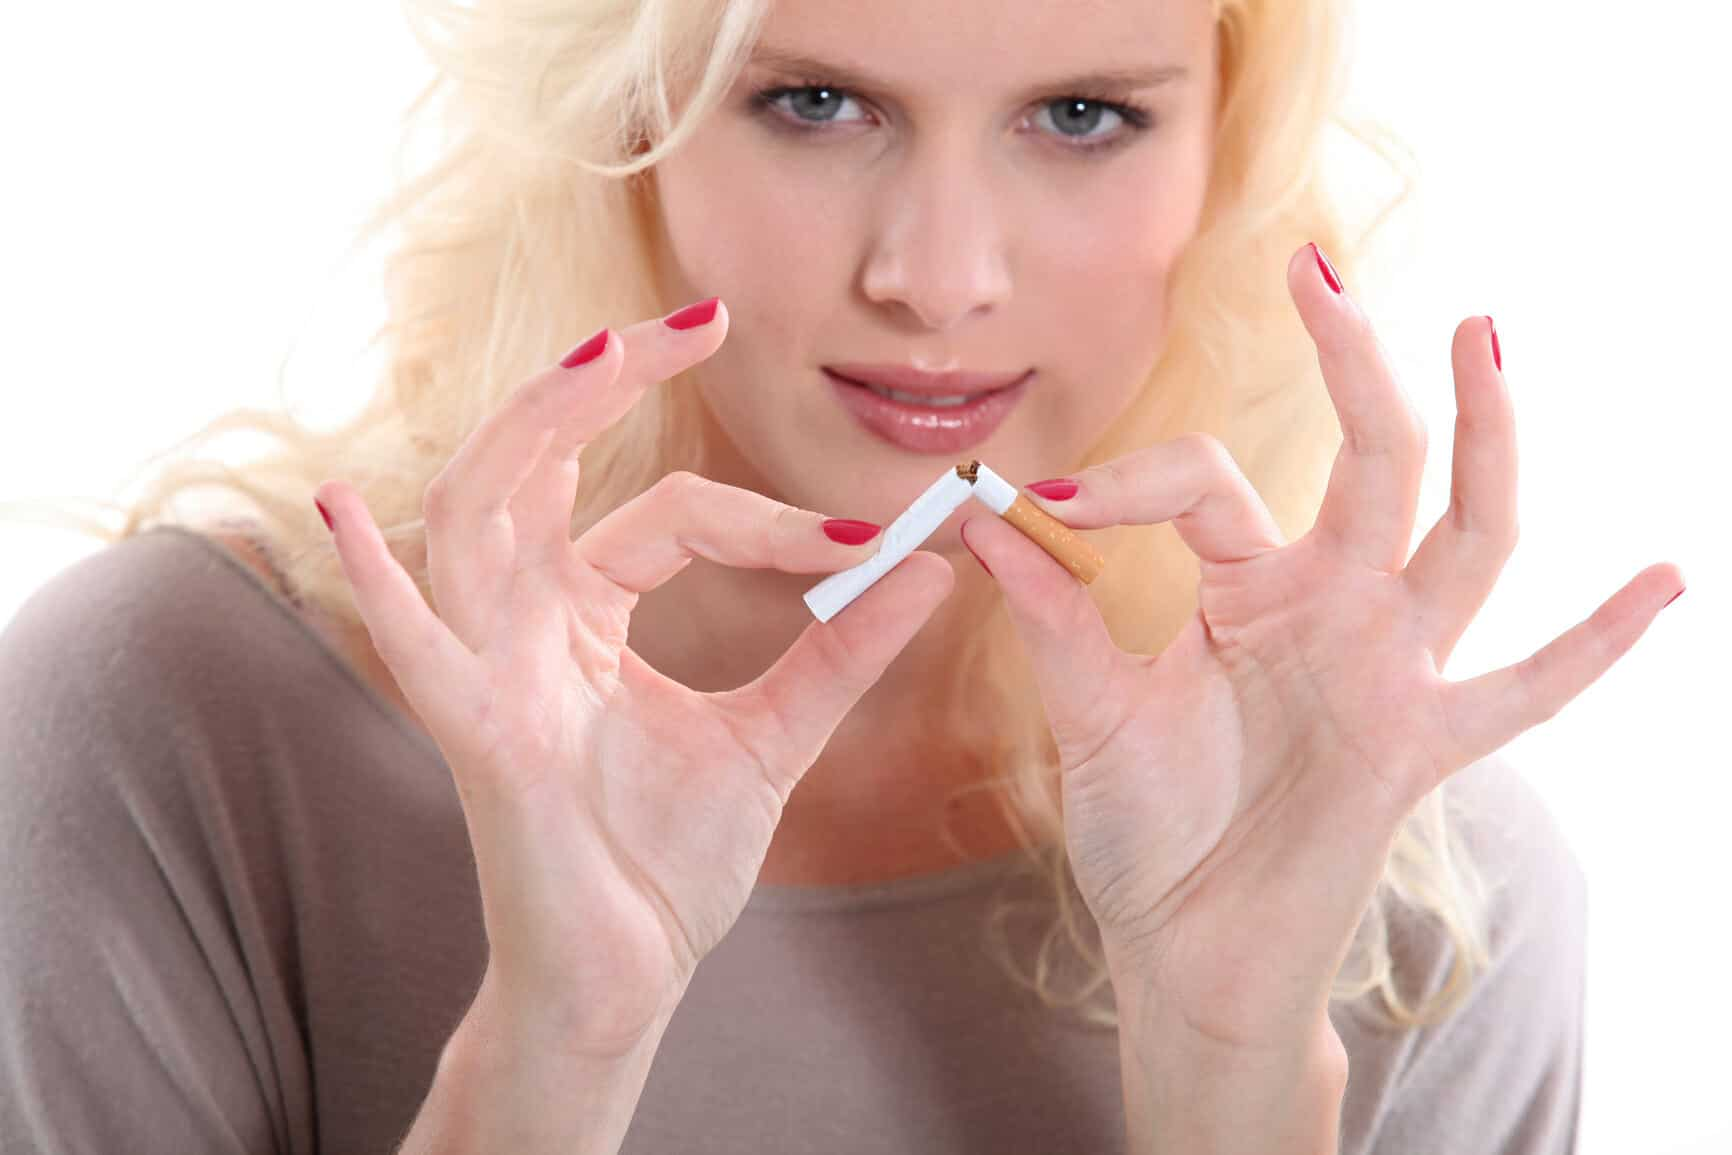 Blond woman giving up smoking